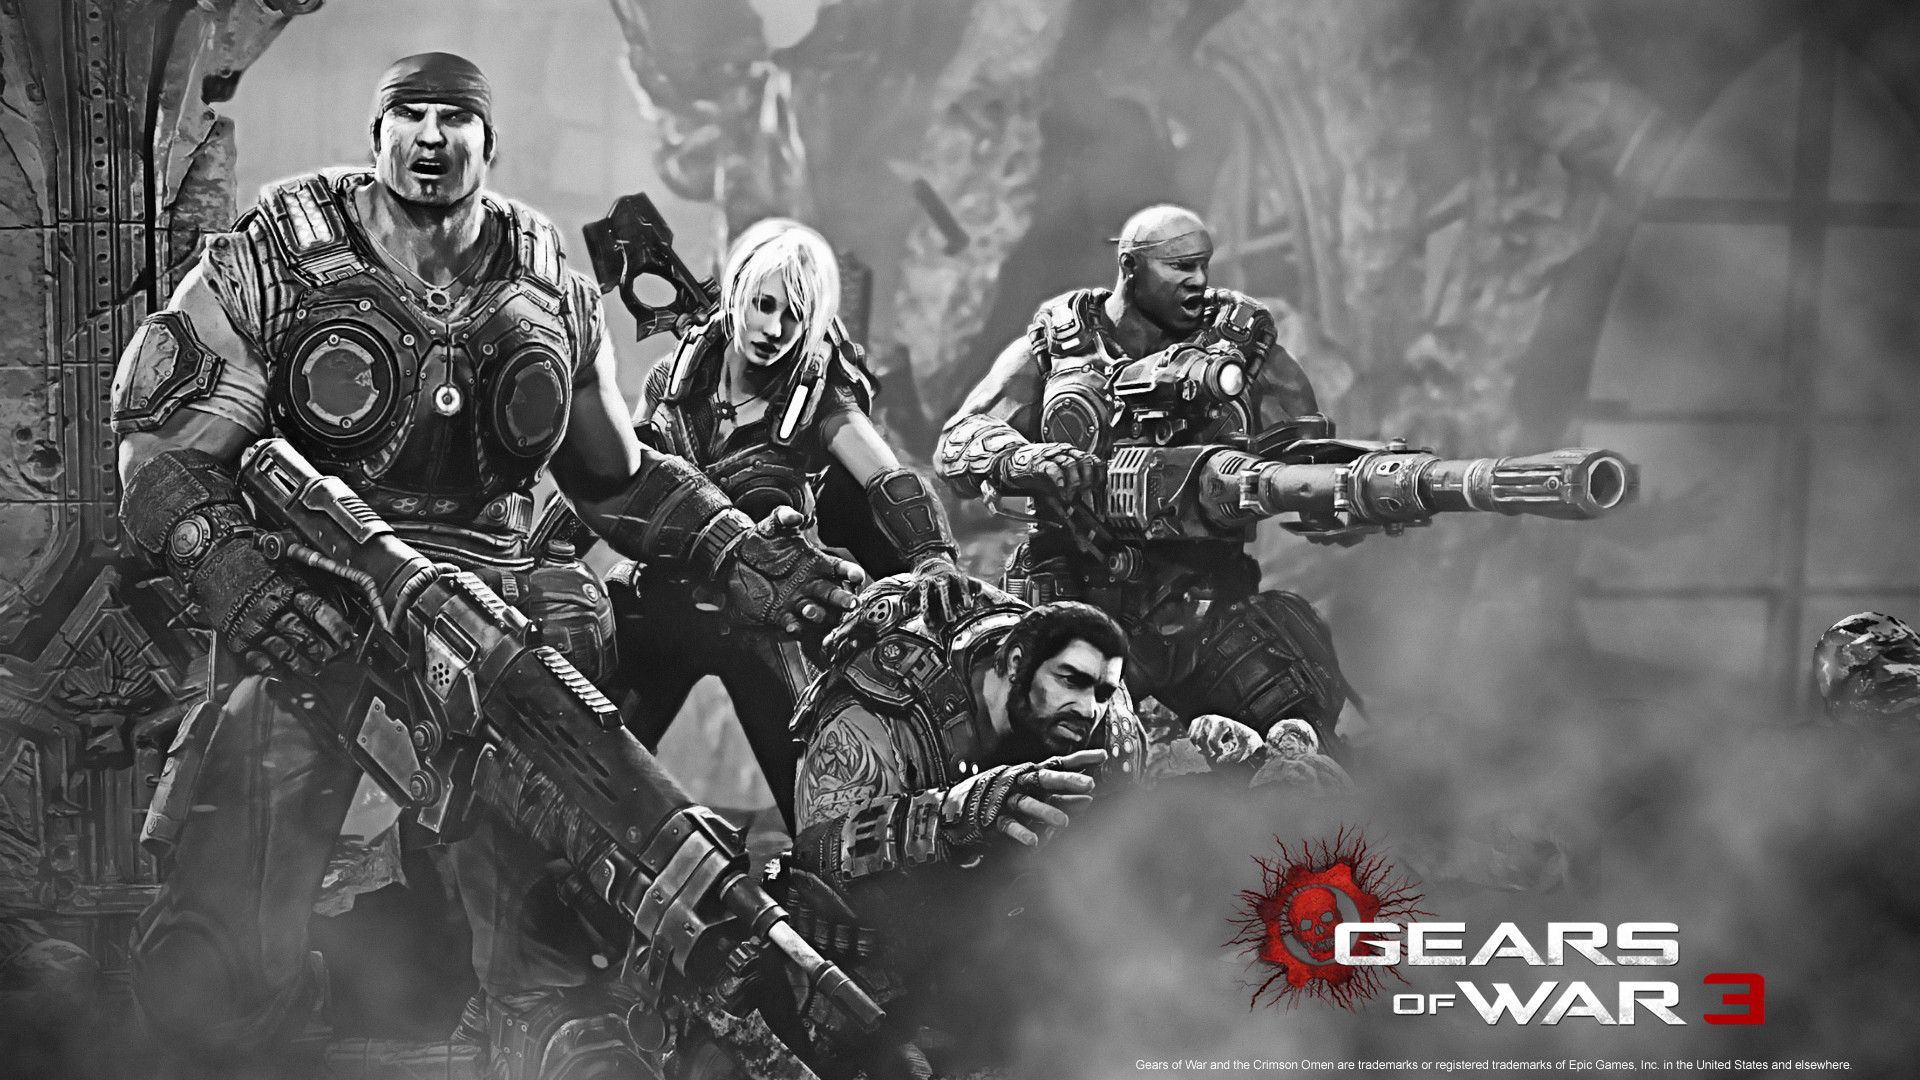 1920x1080 Gears of War 3 Wallpaper HD